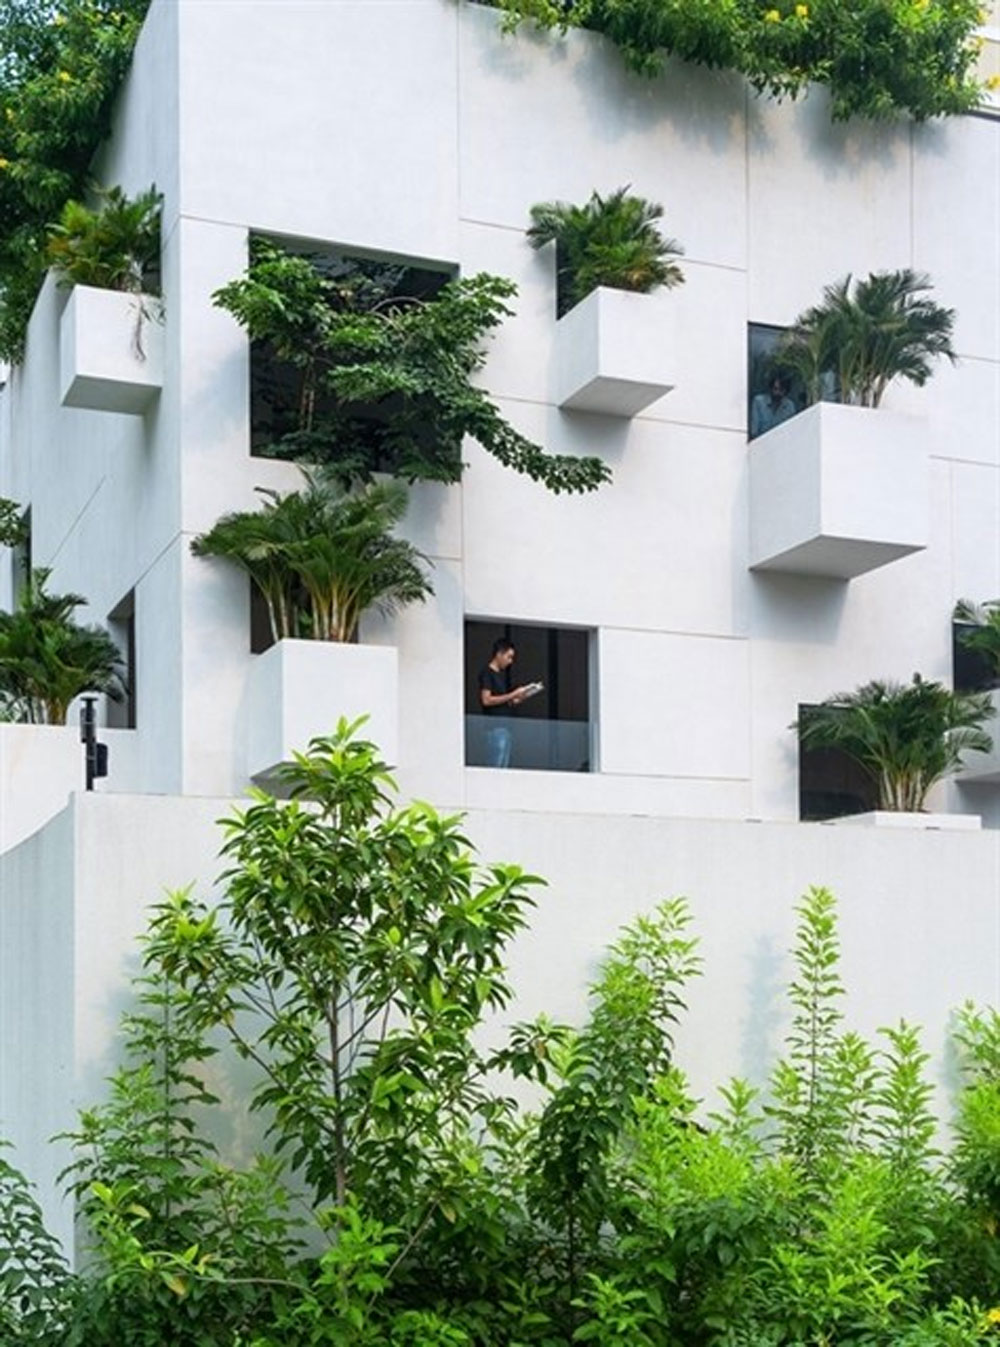 Architecture Community Awards, Sky House, architect Nguyen Hoang Manh, Realised Award, outstanding works